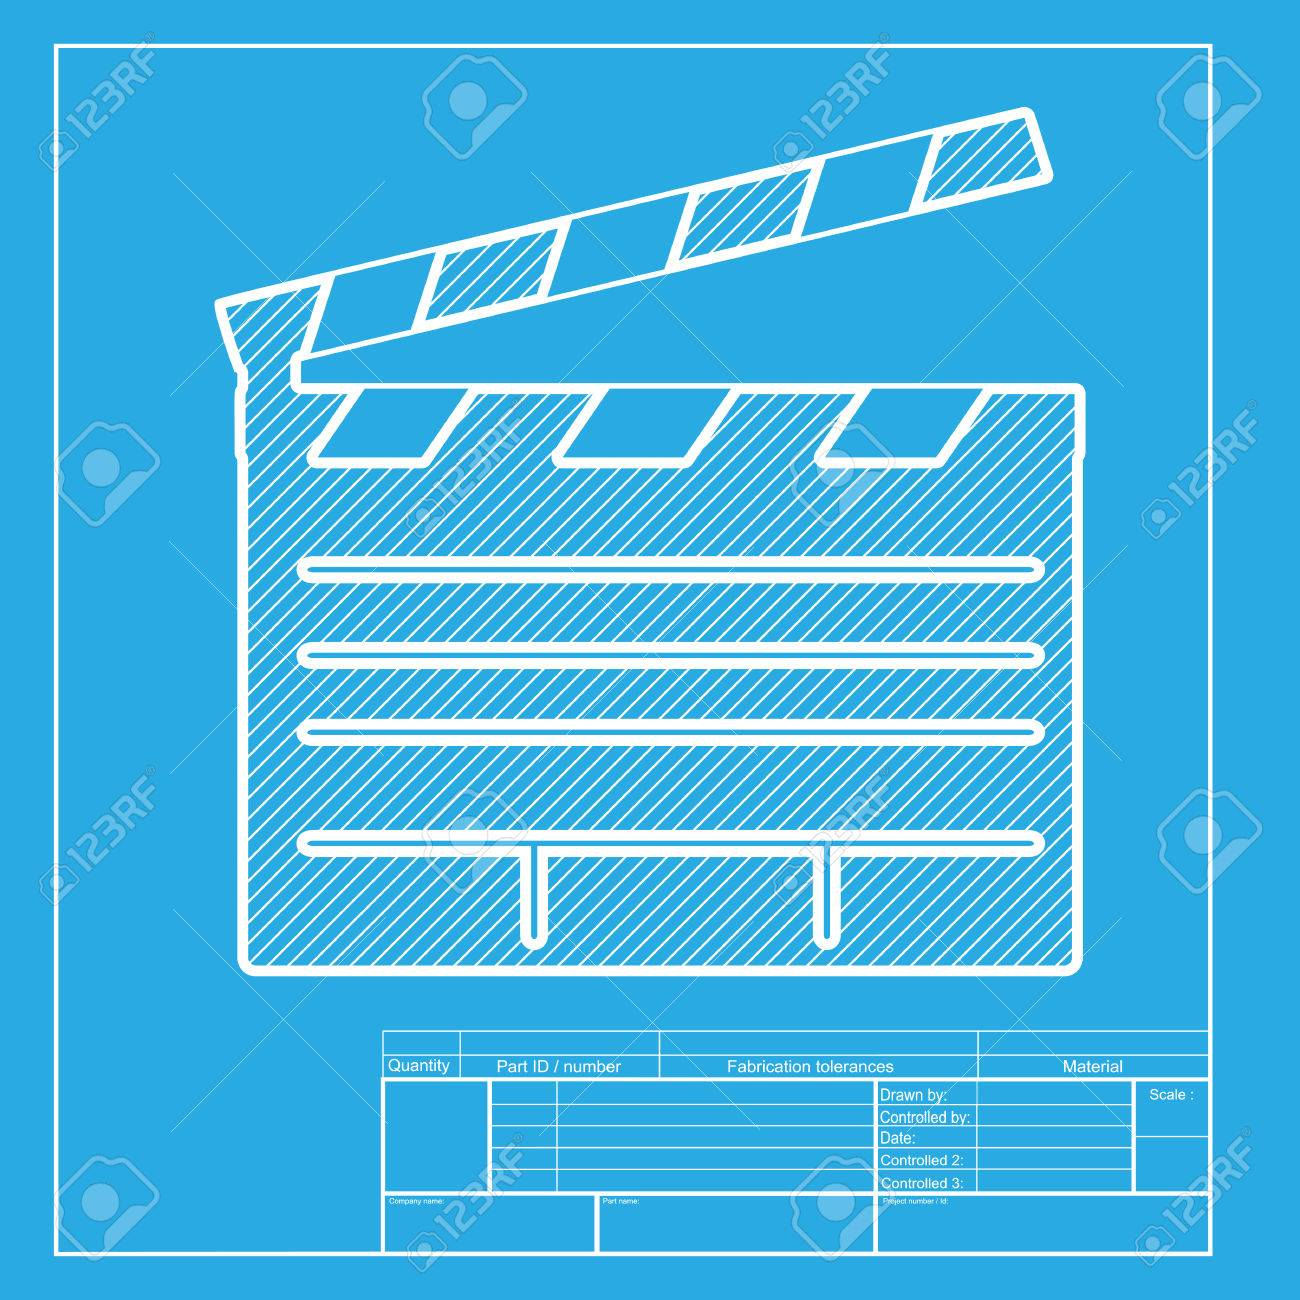 Film clap board cinema sign white section of icon on blueprint film clap board cinema sign white section of icon on blueprint template stock vector malvernweather Choice Image